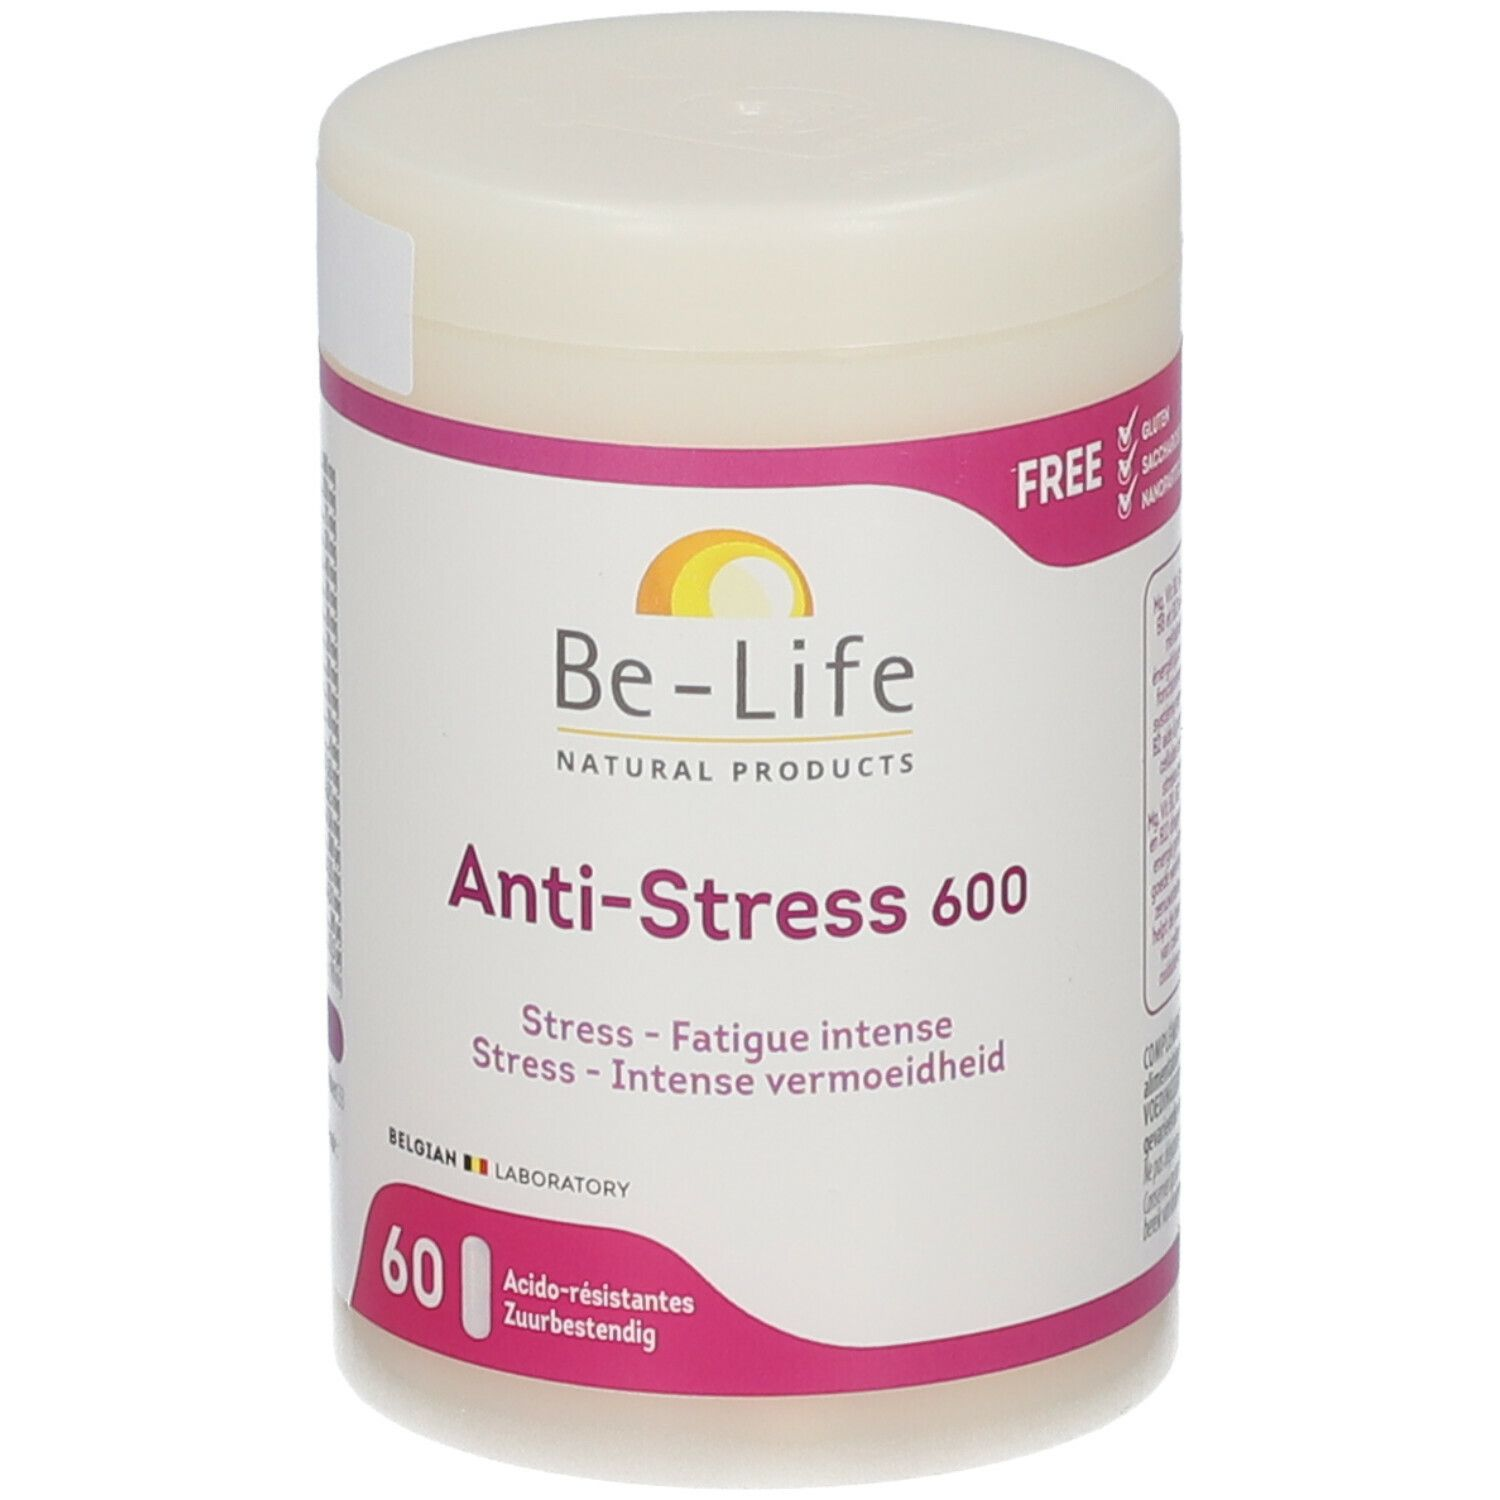 Image of Be-Life Anti-Stress 600